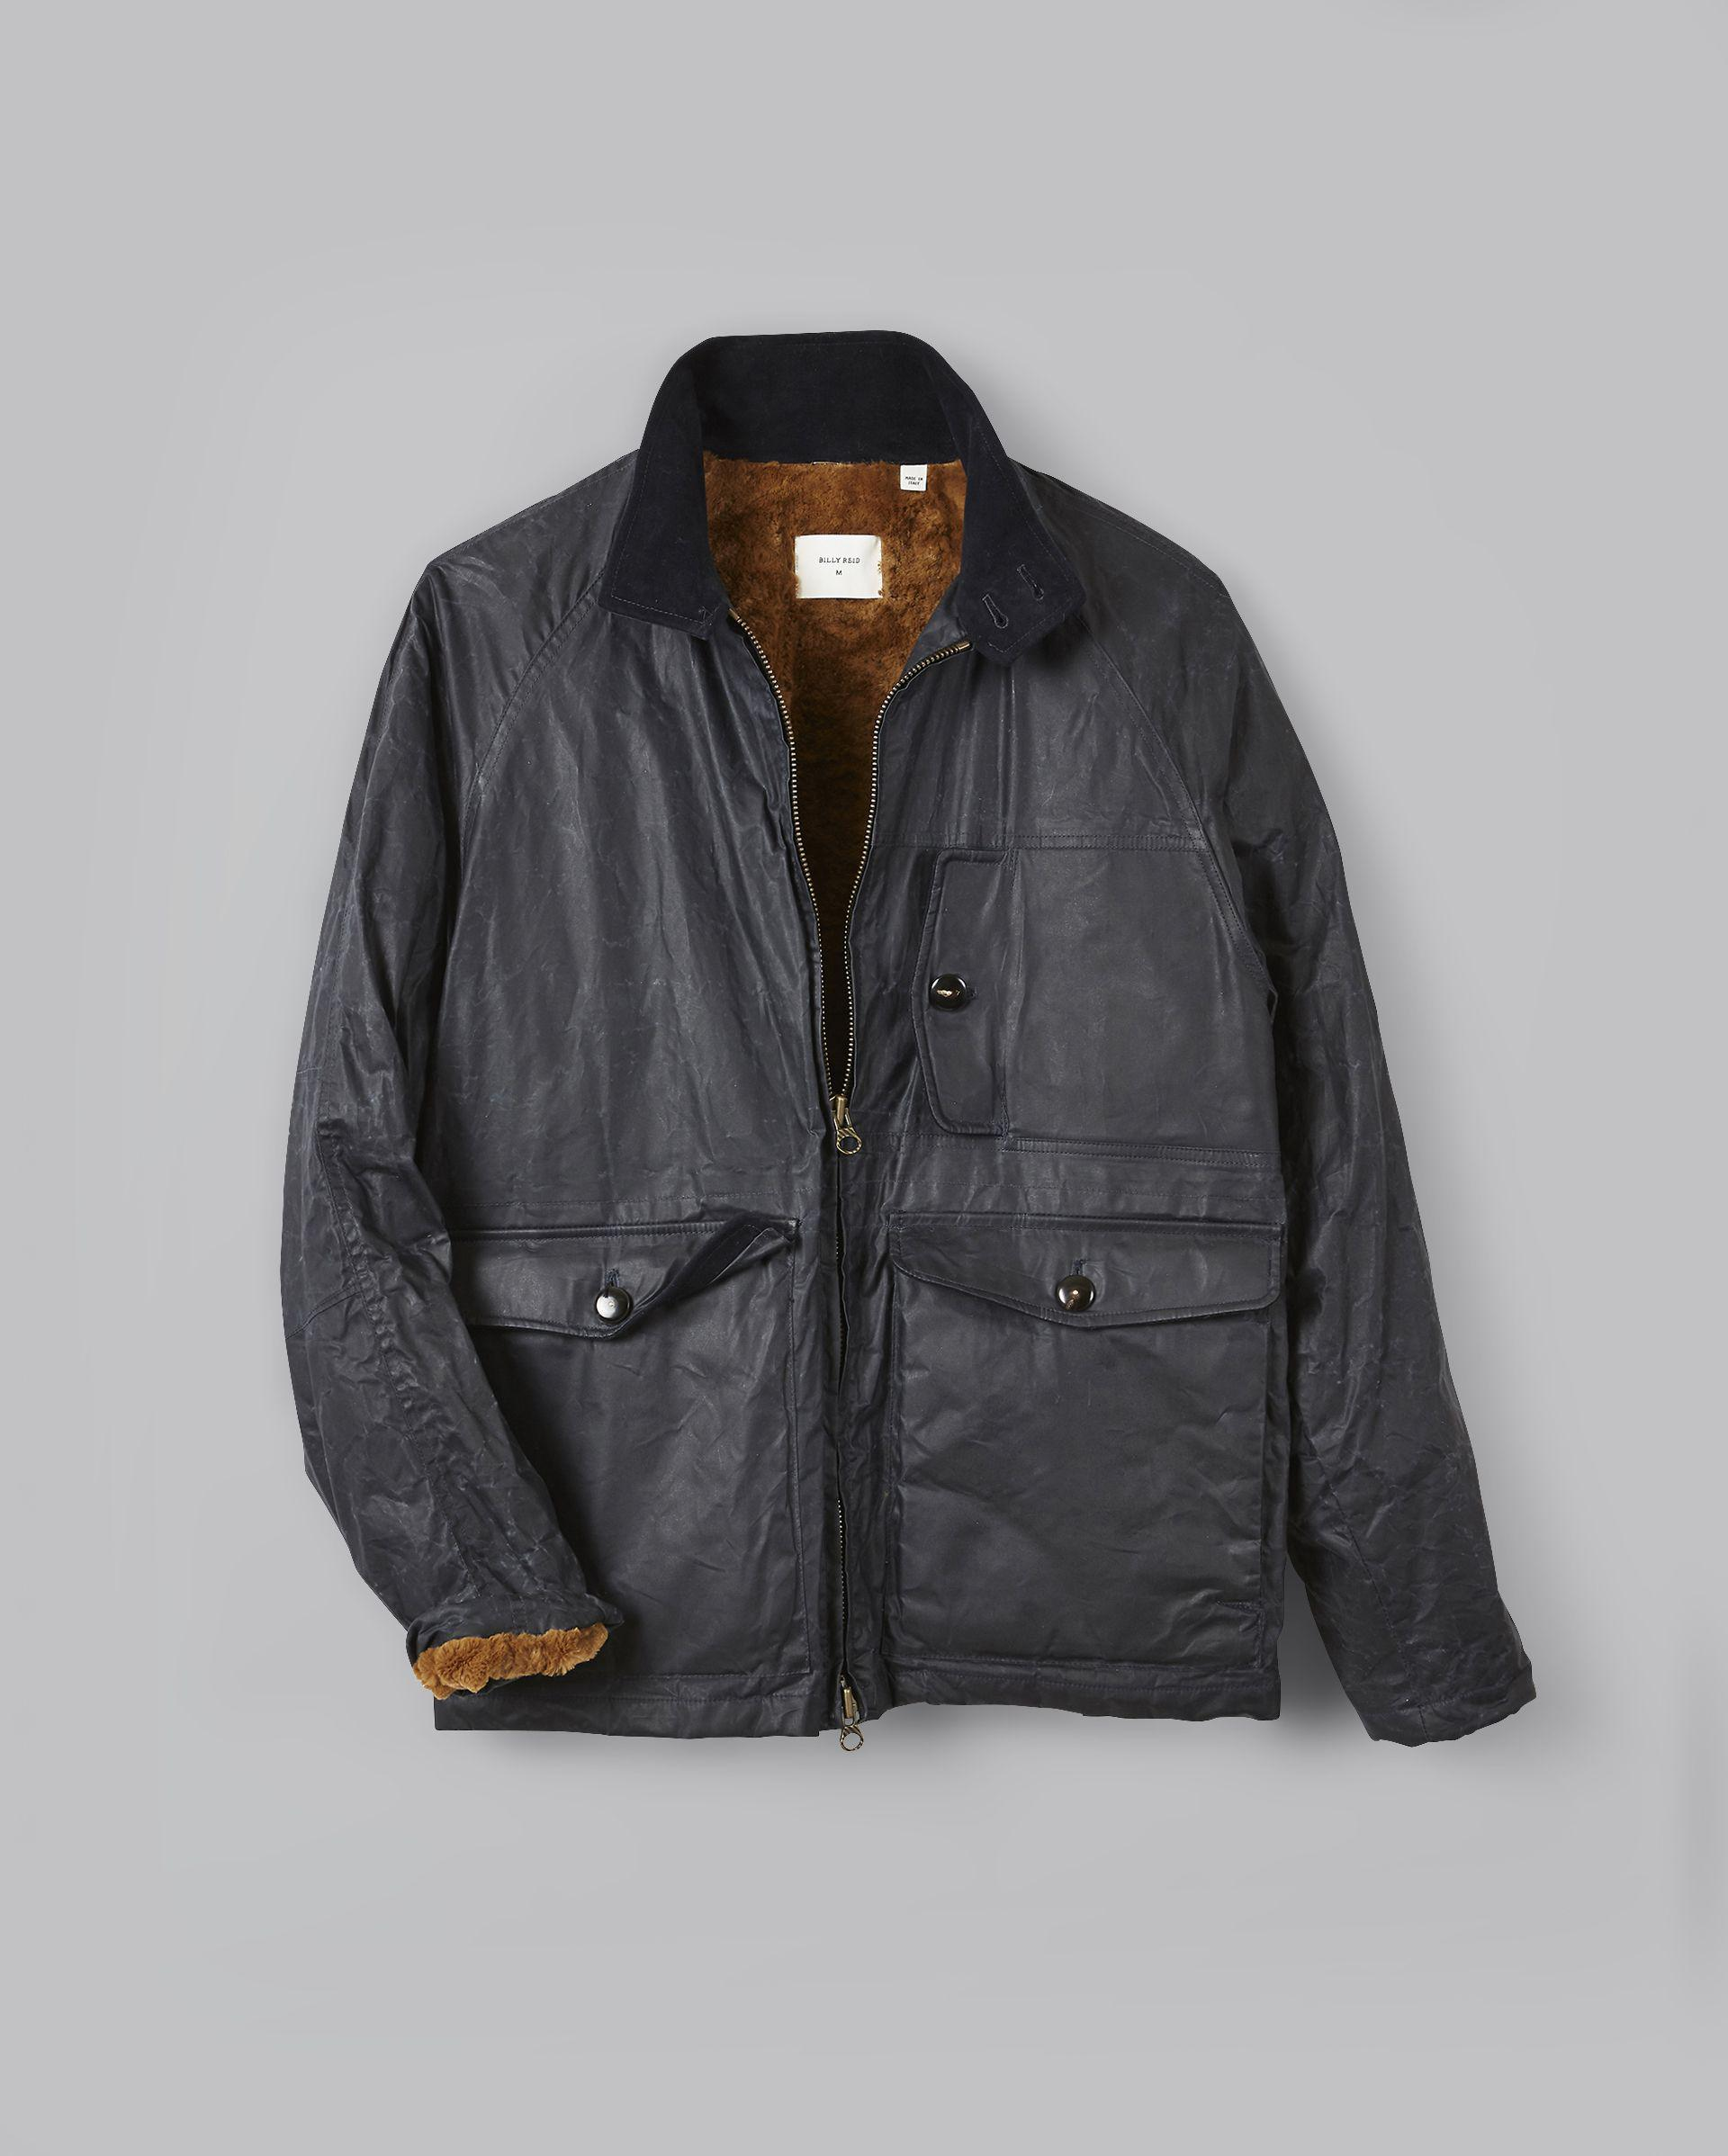 8291bd8626 Lyst - Billy Reid Dempsey Jacket for Men